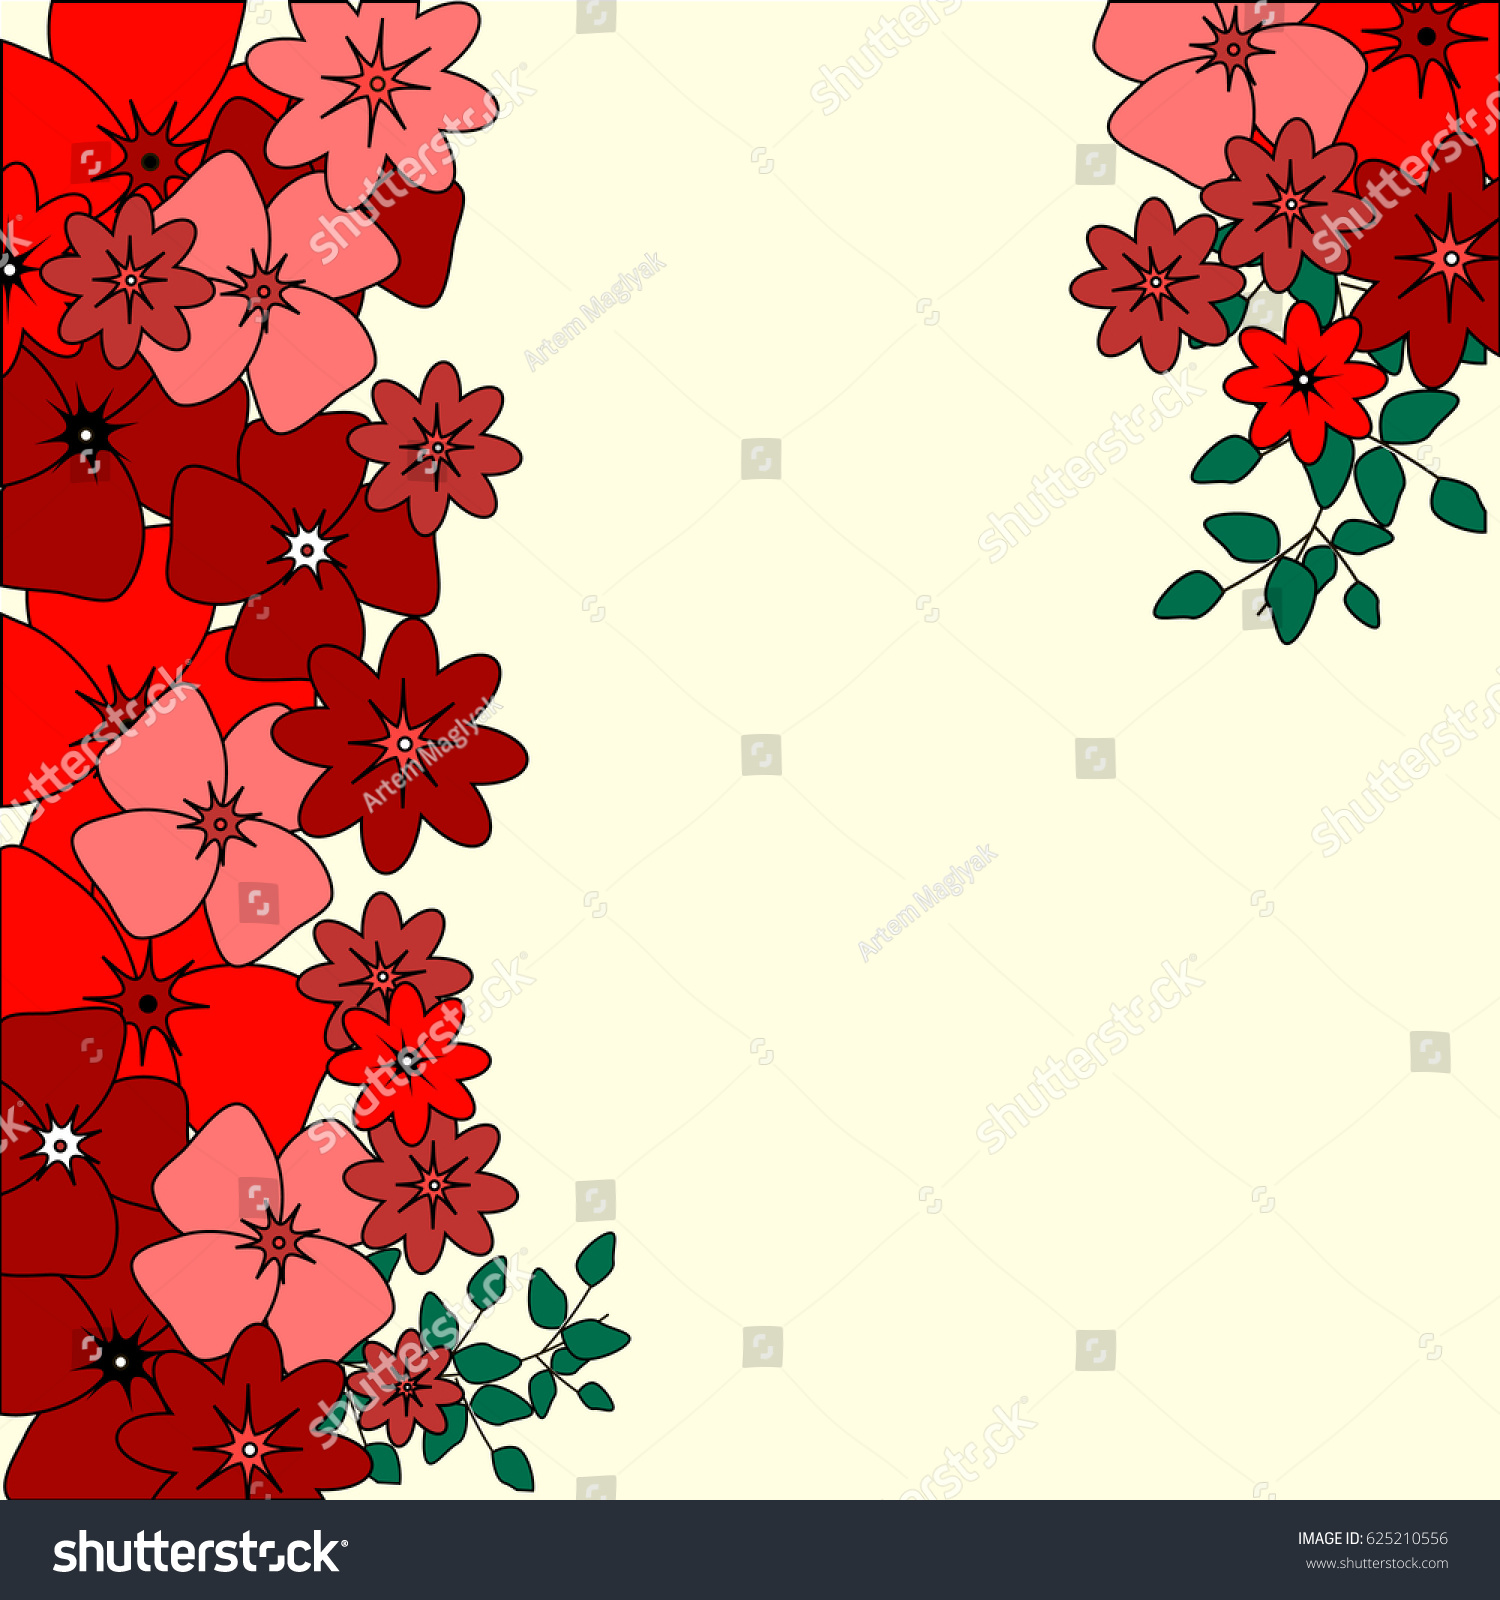 invitation card with flowers for wedding, background, cute pink and ...